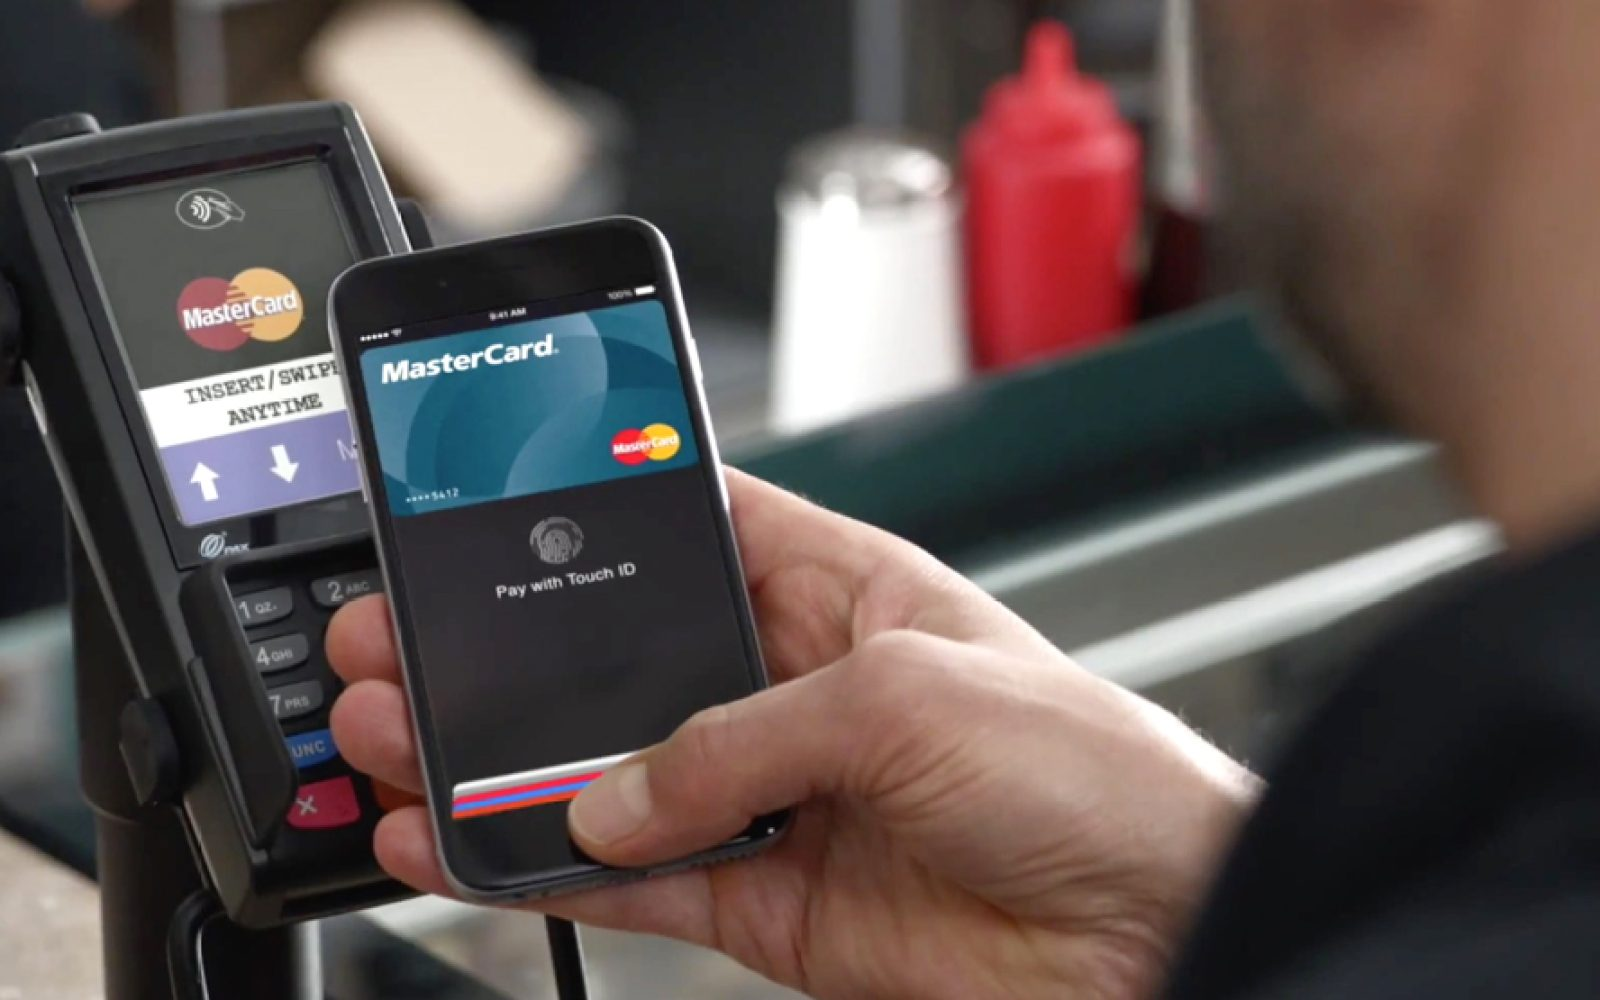 Apple in talks to expand NFC in iPhone 6 beyond Apple Pay